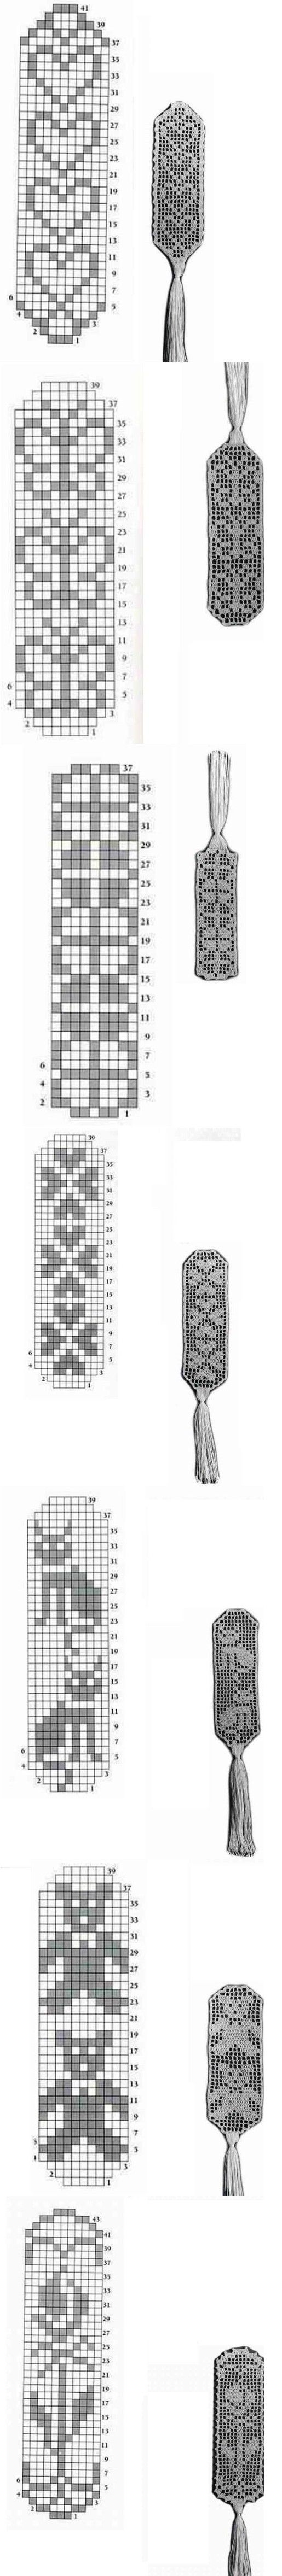 filet crochet - lovely bookmarks - easy-to-do present!